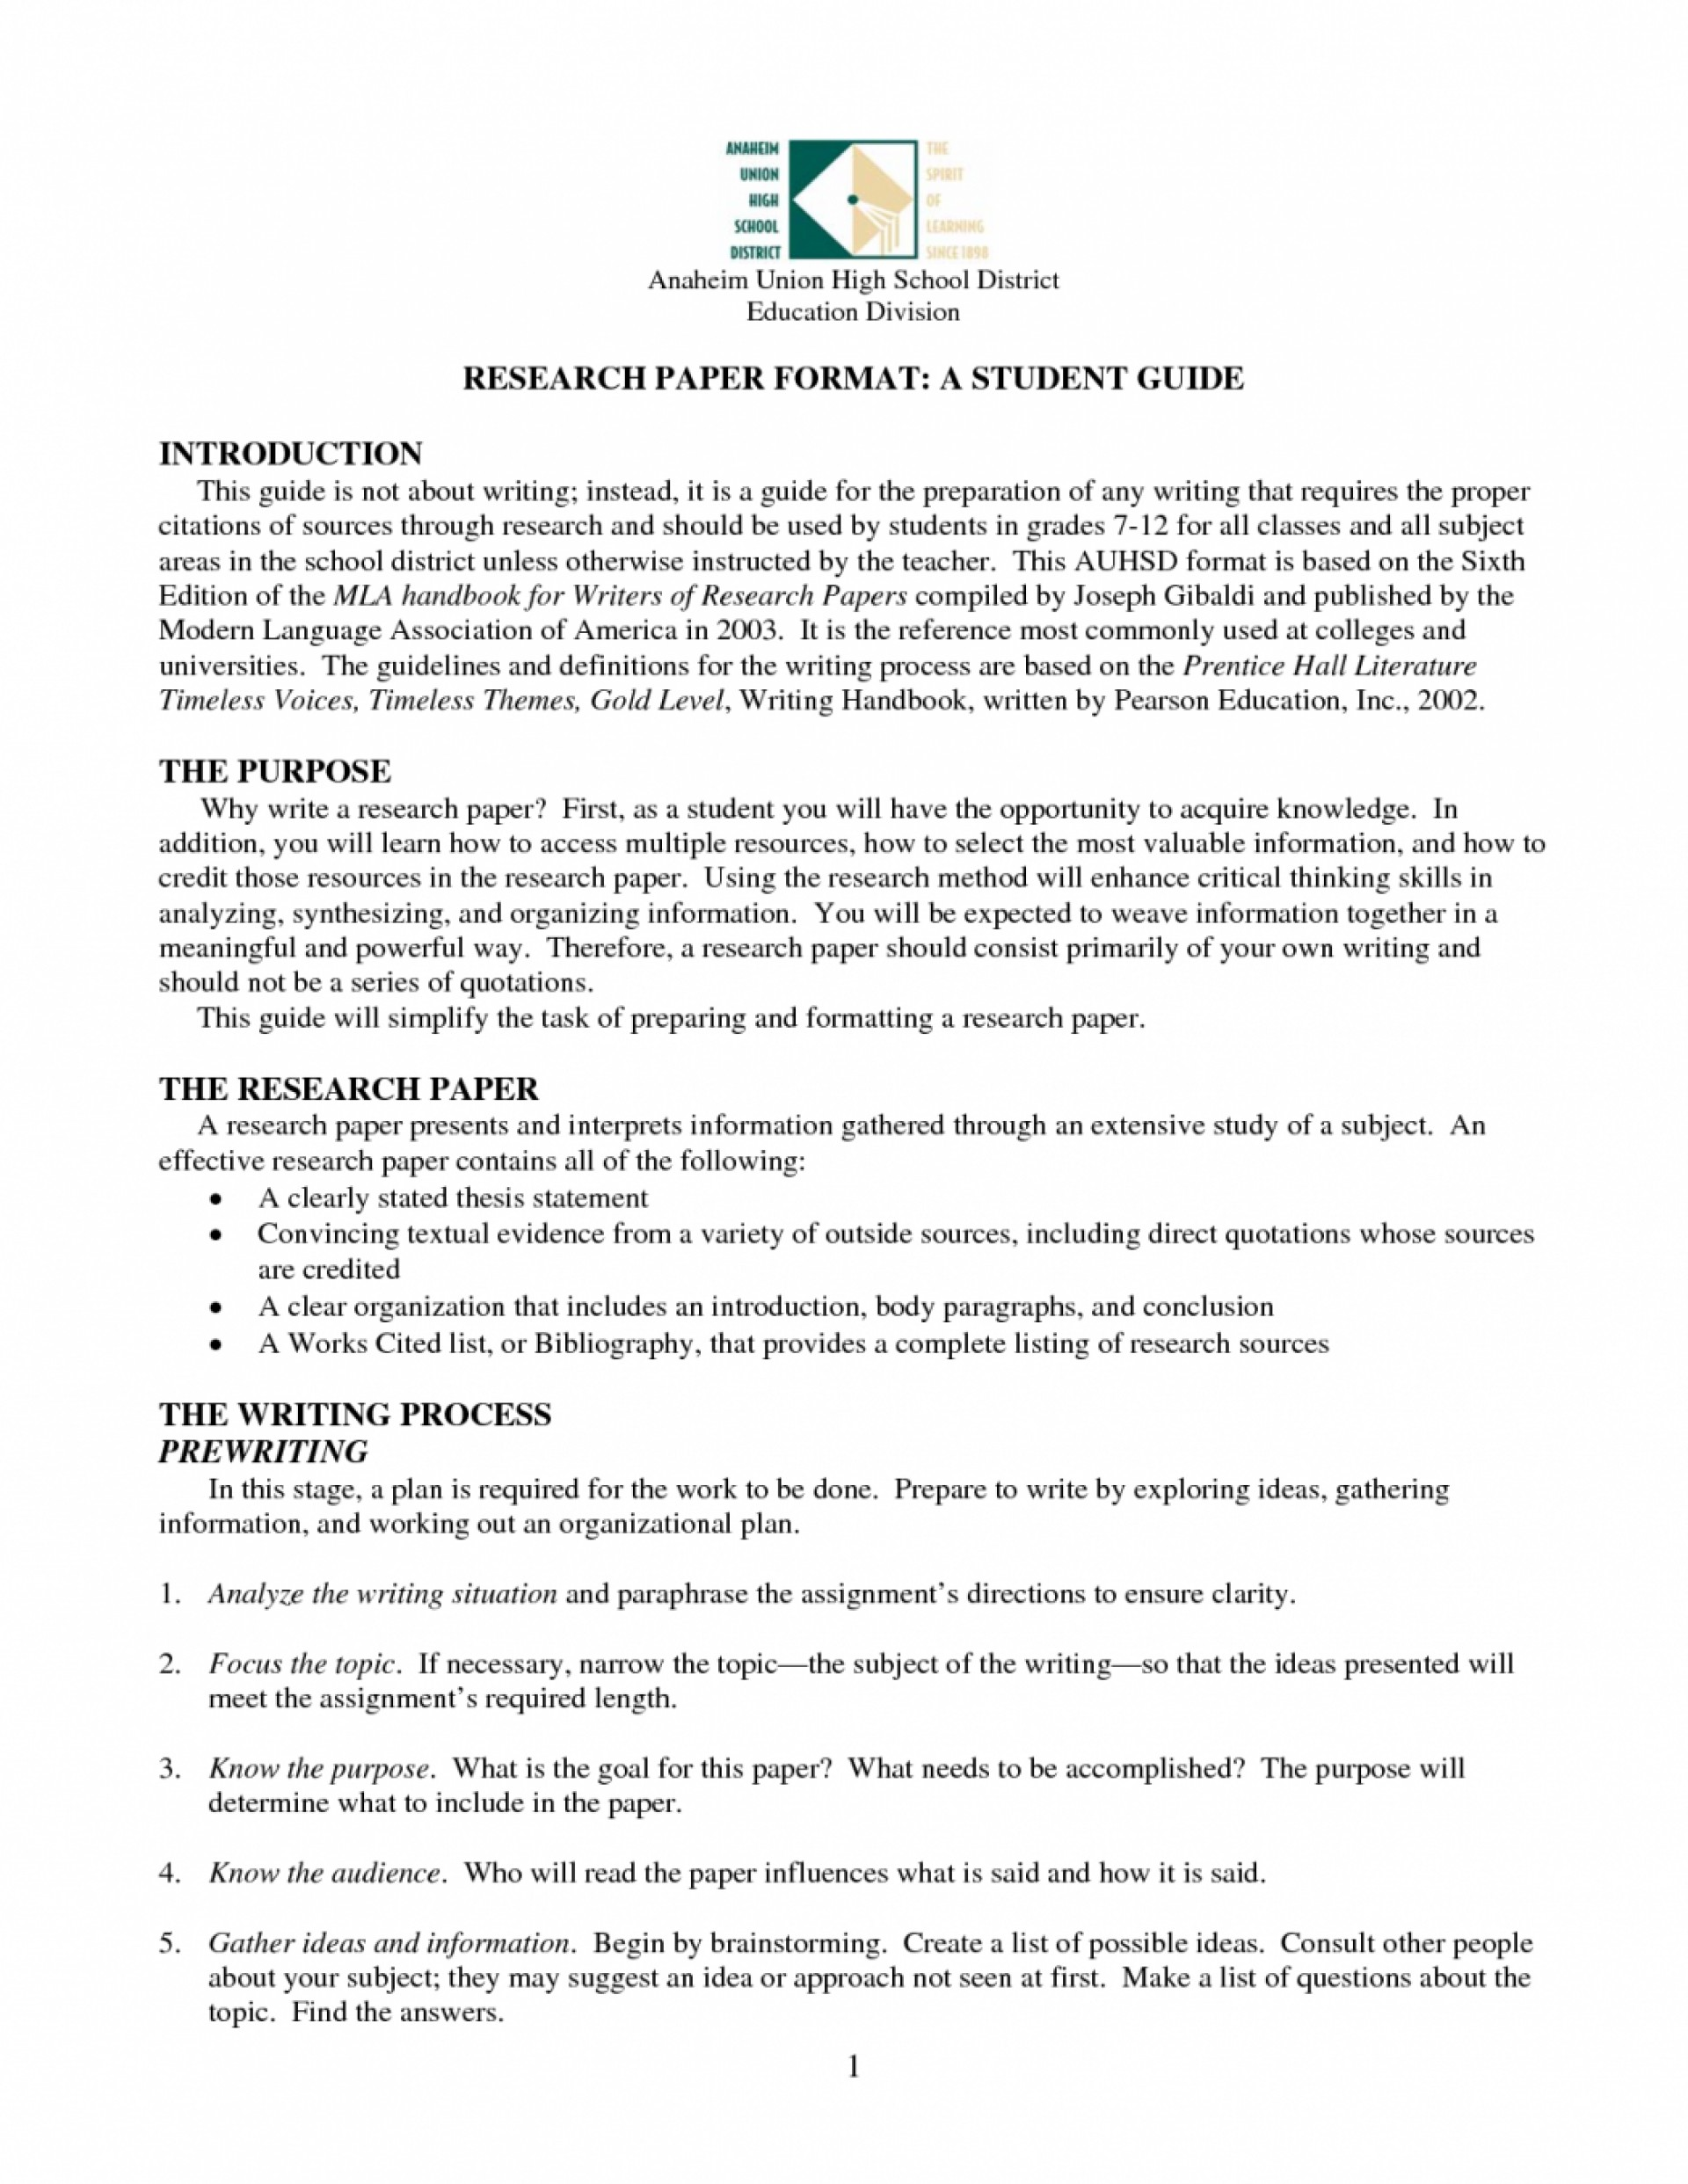 010 Research Paper Example Of On Domestic Violence Essays About Essay Topics Exceptional Outline For Proposal 1920